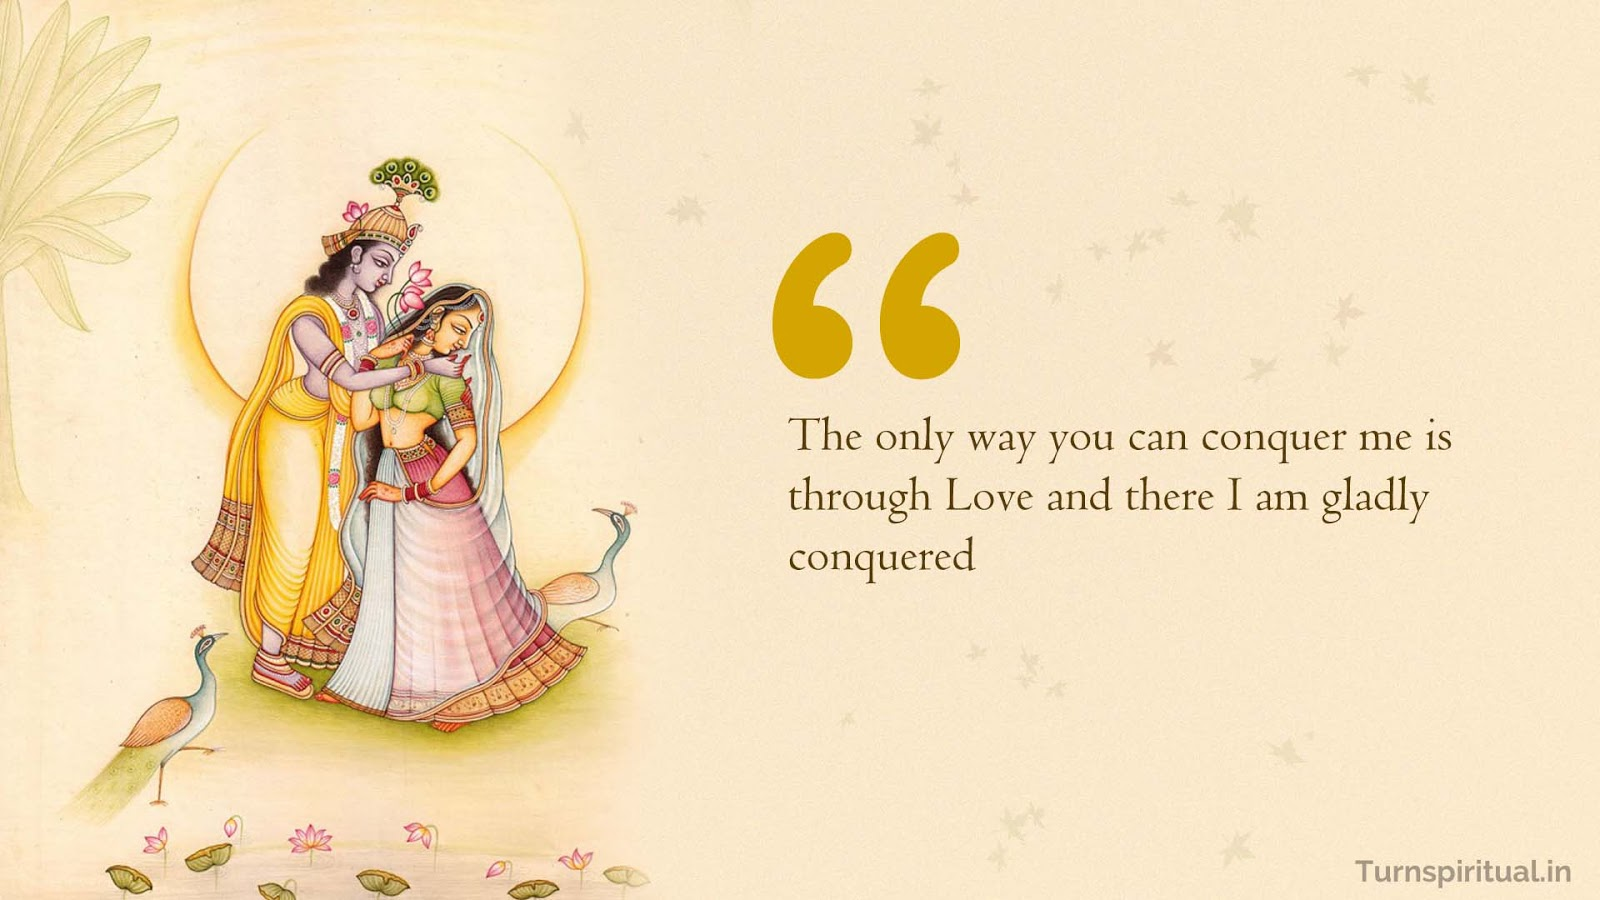 Lord Krishna Quotes Inspiration 14 Quoteslord Krishna On Love From Bhagavadgita  Turnspiritual.in